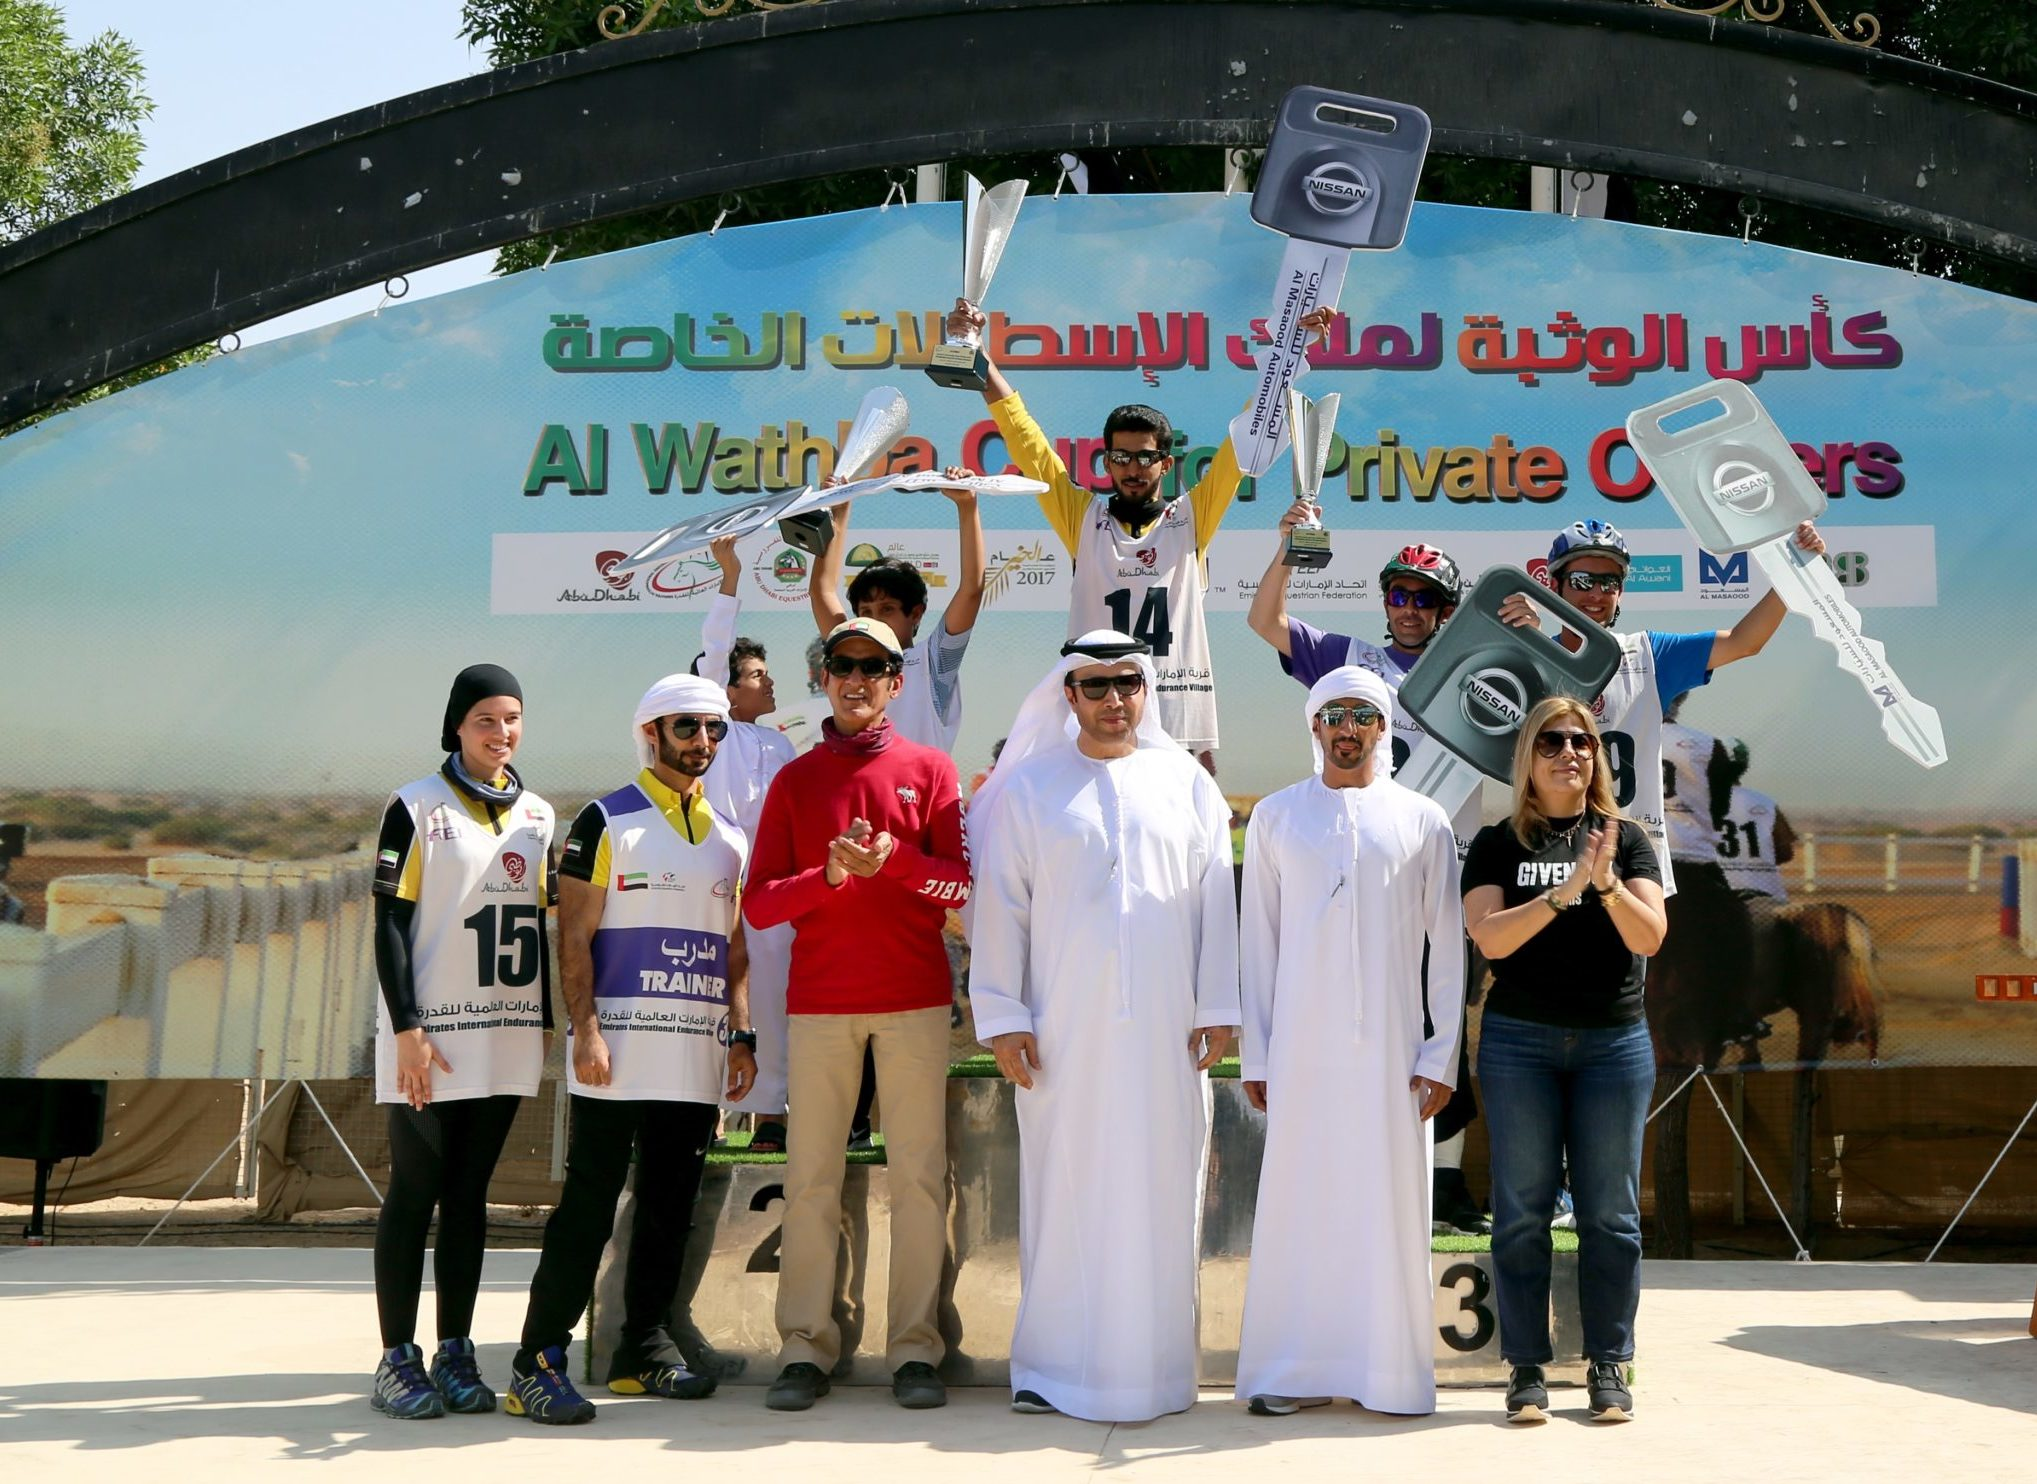 Endurance World Al Wathba Cup. The podium.